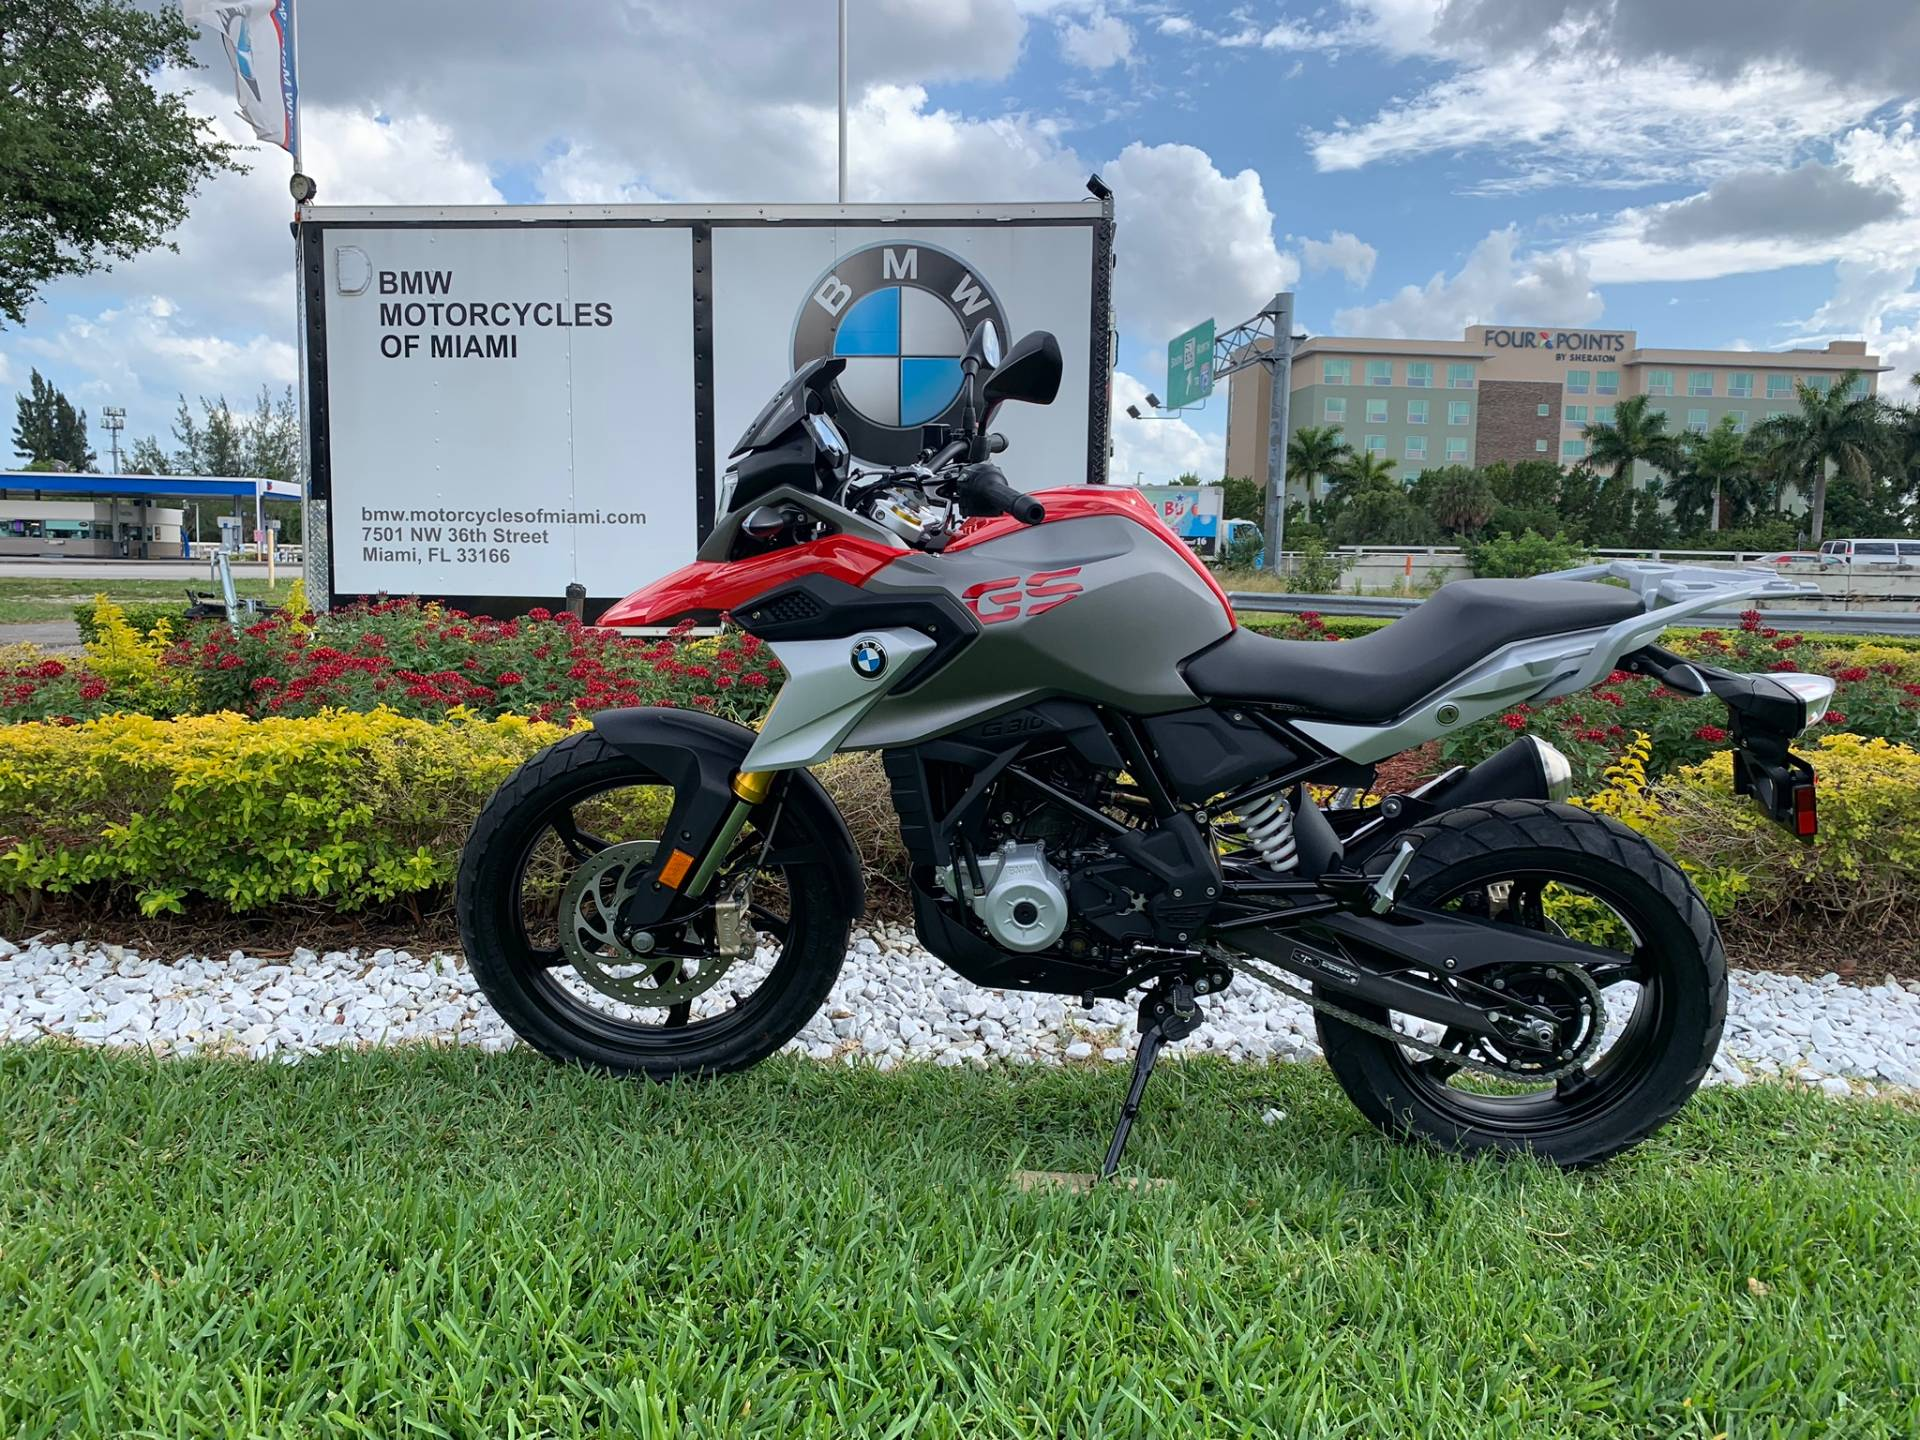 New 2019 BMW G 310 GS for sale, BMW G 310GS for sale, BMW Motorcycle GS, new BMW GS, Spirit of GS, BMW Motorcycles of Miami, Motorcycles of Miami, Motorcycles Miami, New Motorcycles, Used Motorcycles, pre-owned. #BMWMotorcyclesOfMiami #MotorcyclesOfMiami. - Photo 6